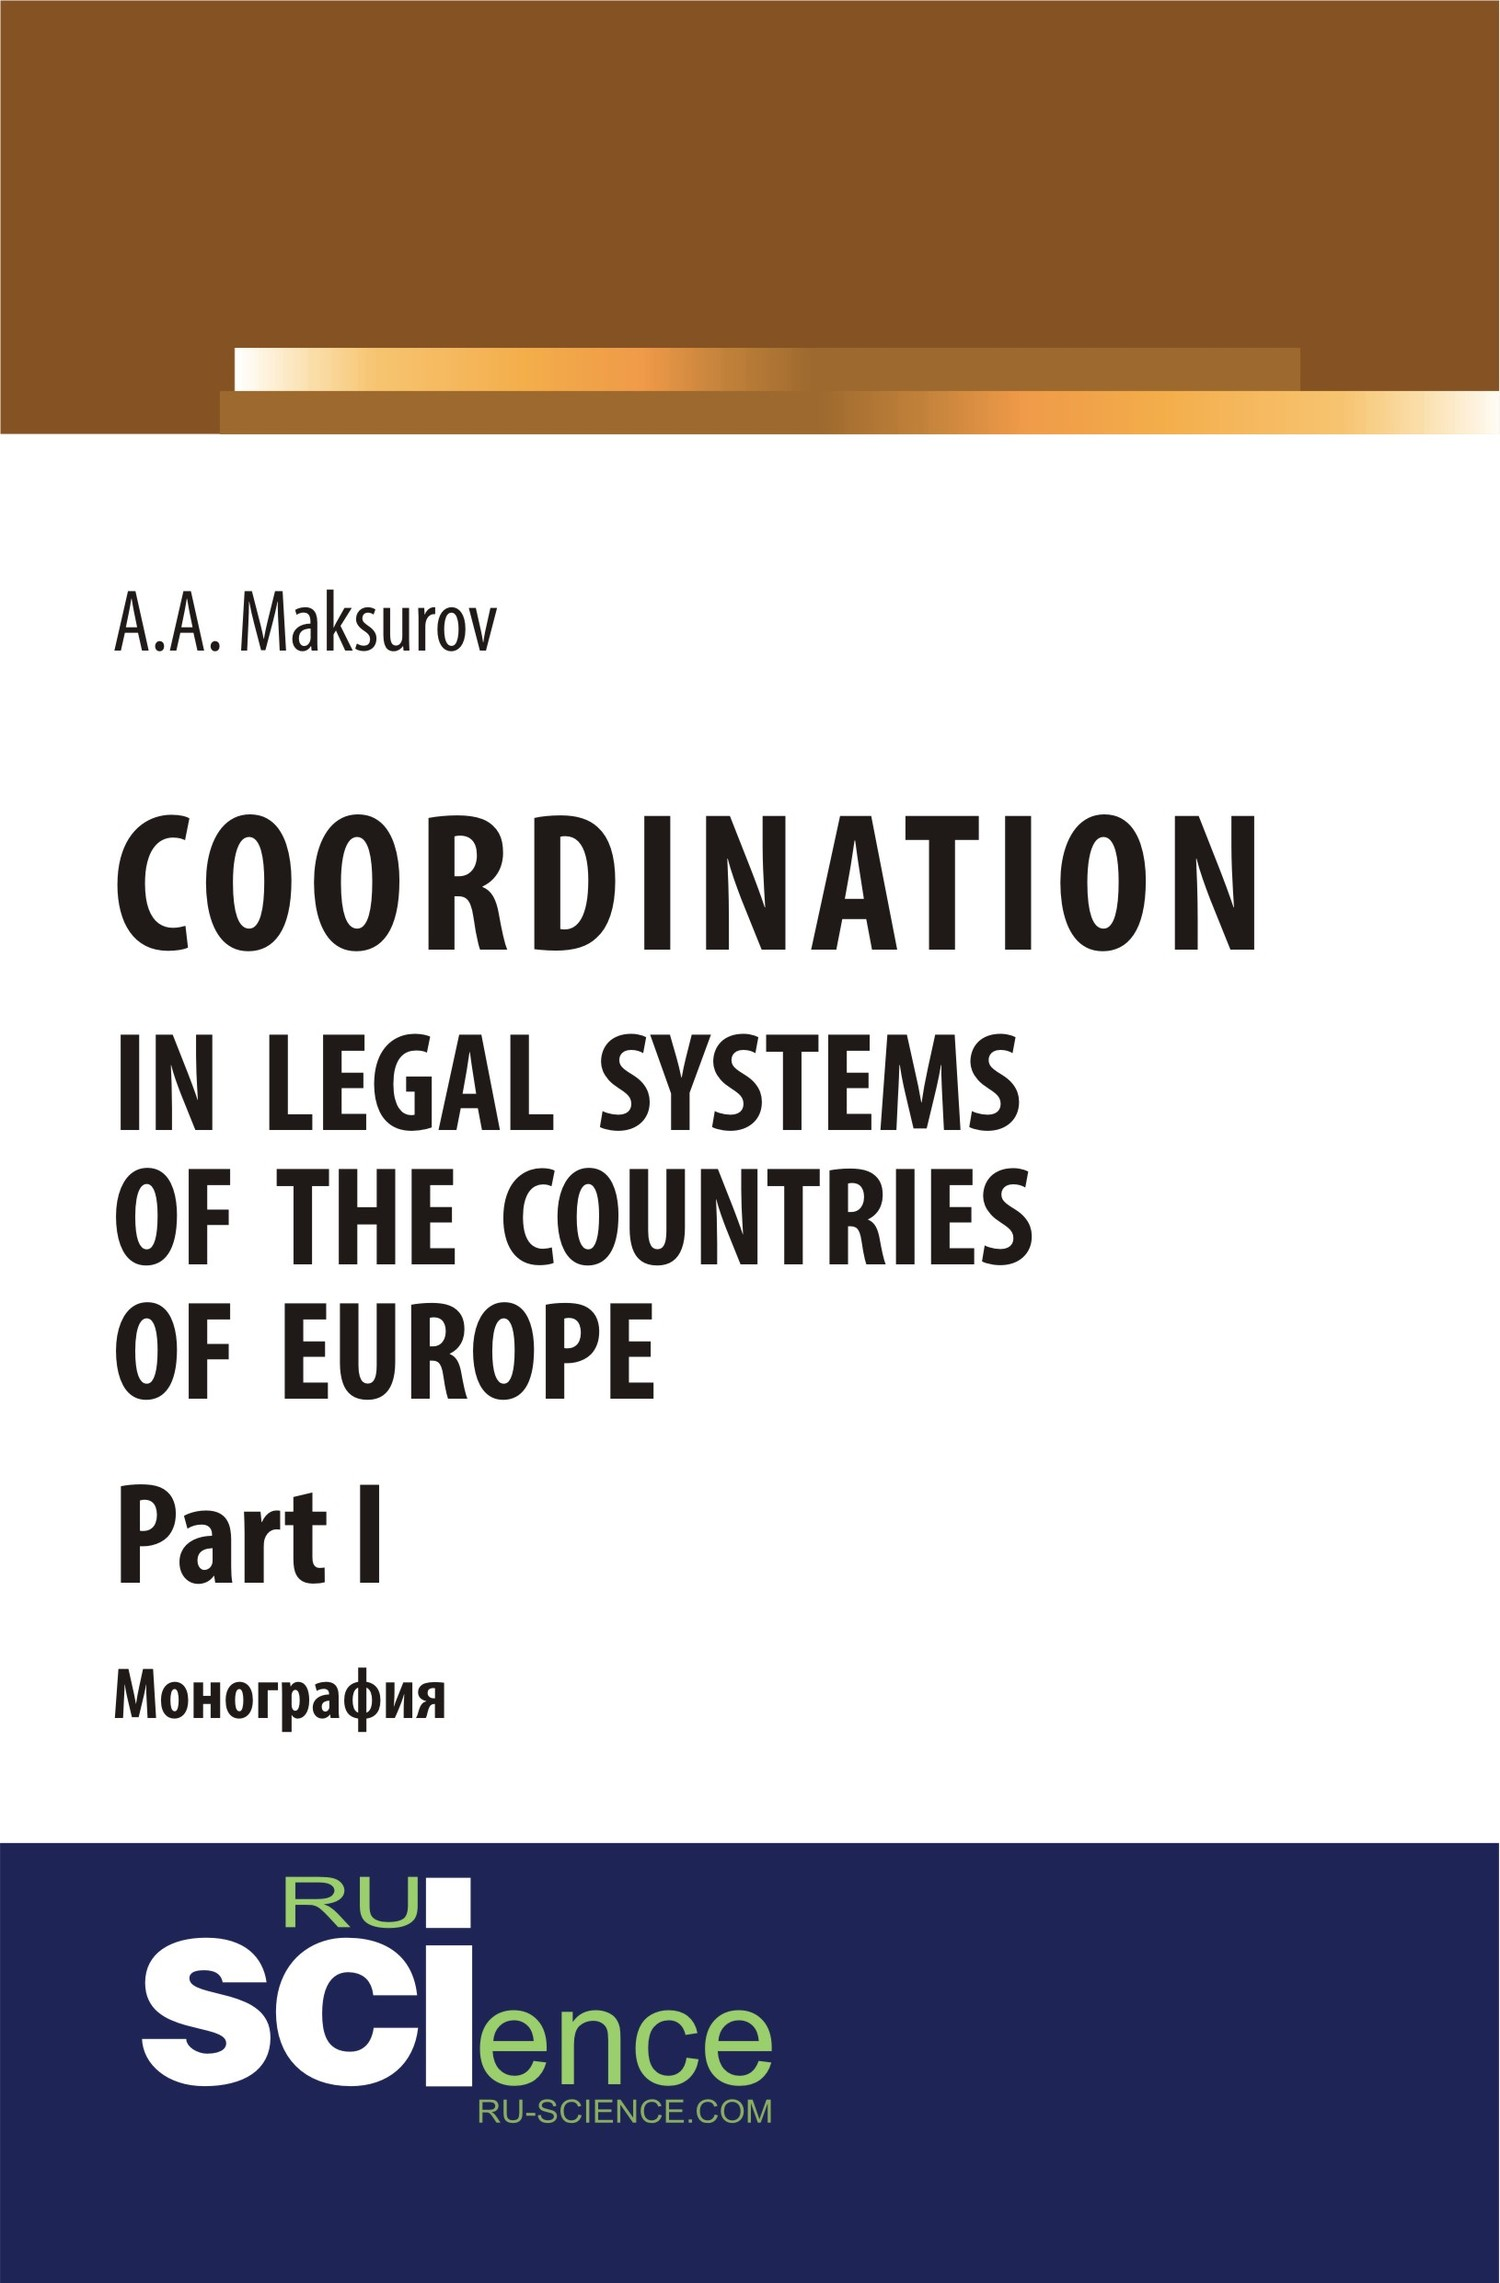 А. А. Максуров Coordination in legal systems of the countries of Europe. Part I the silmarillion